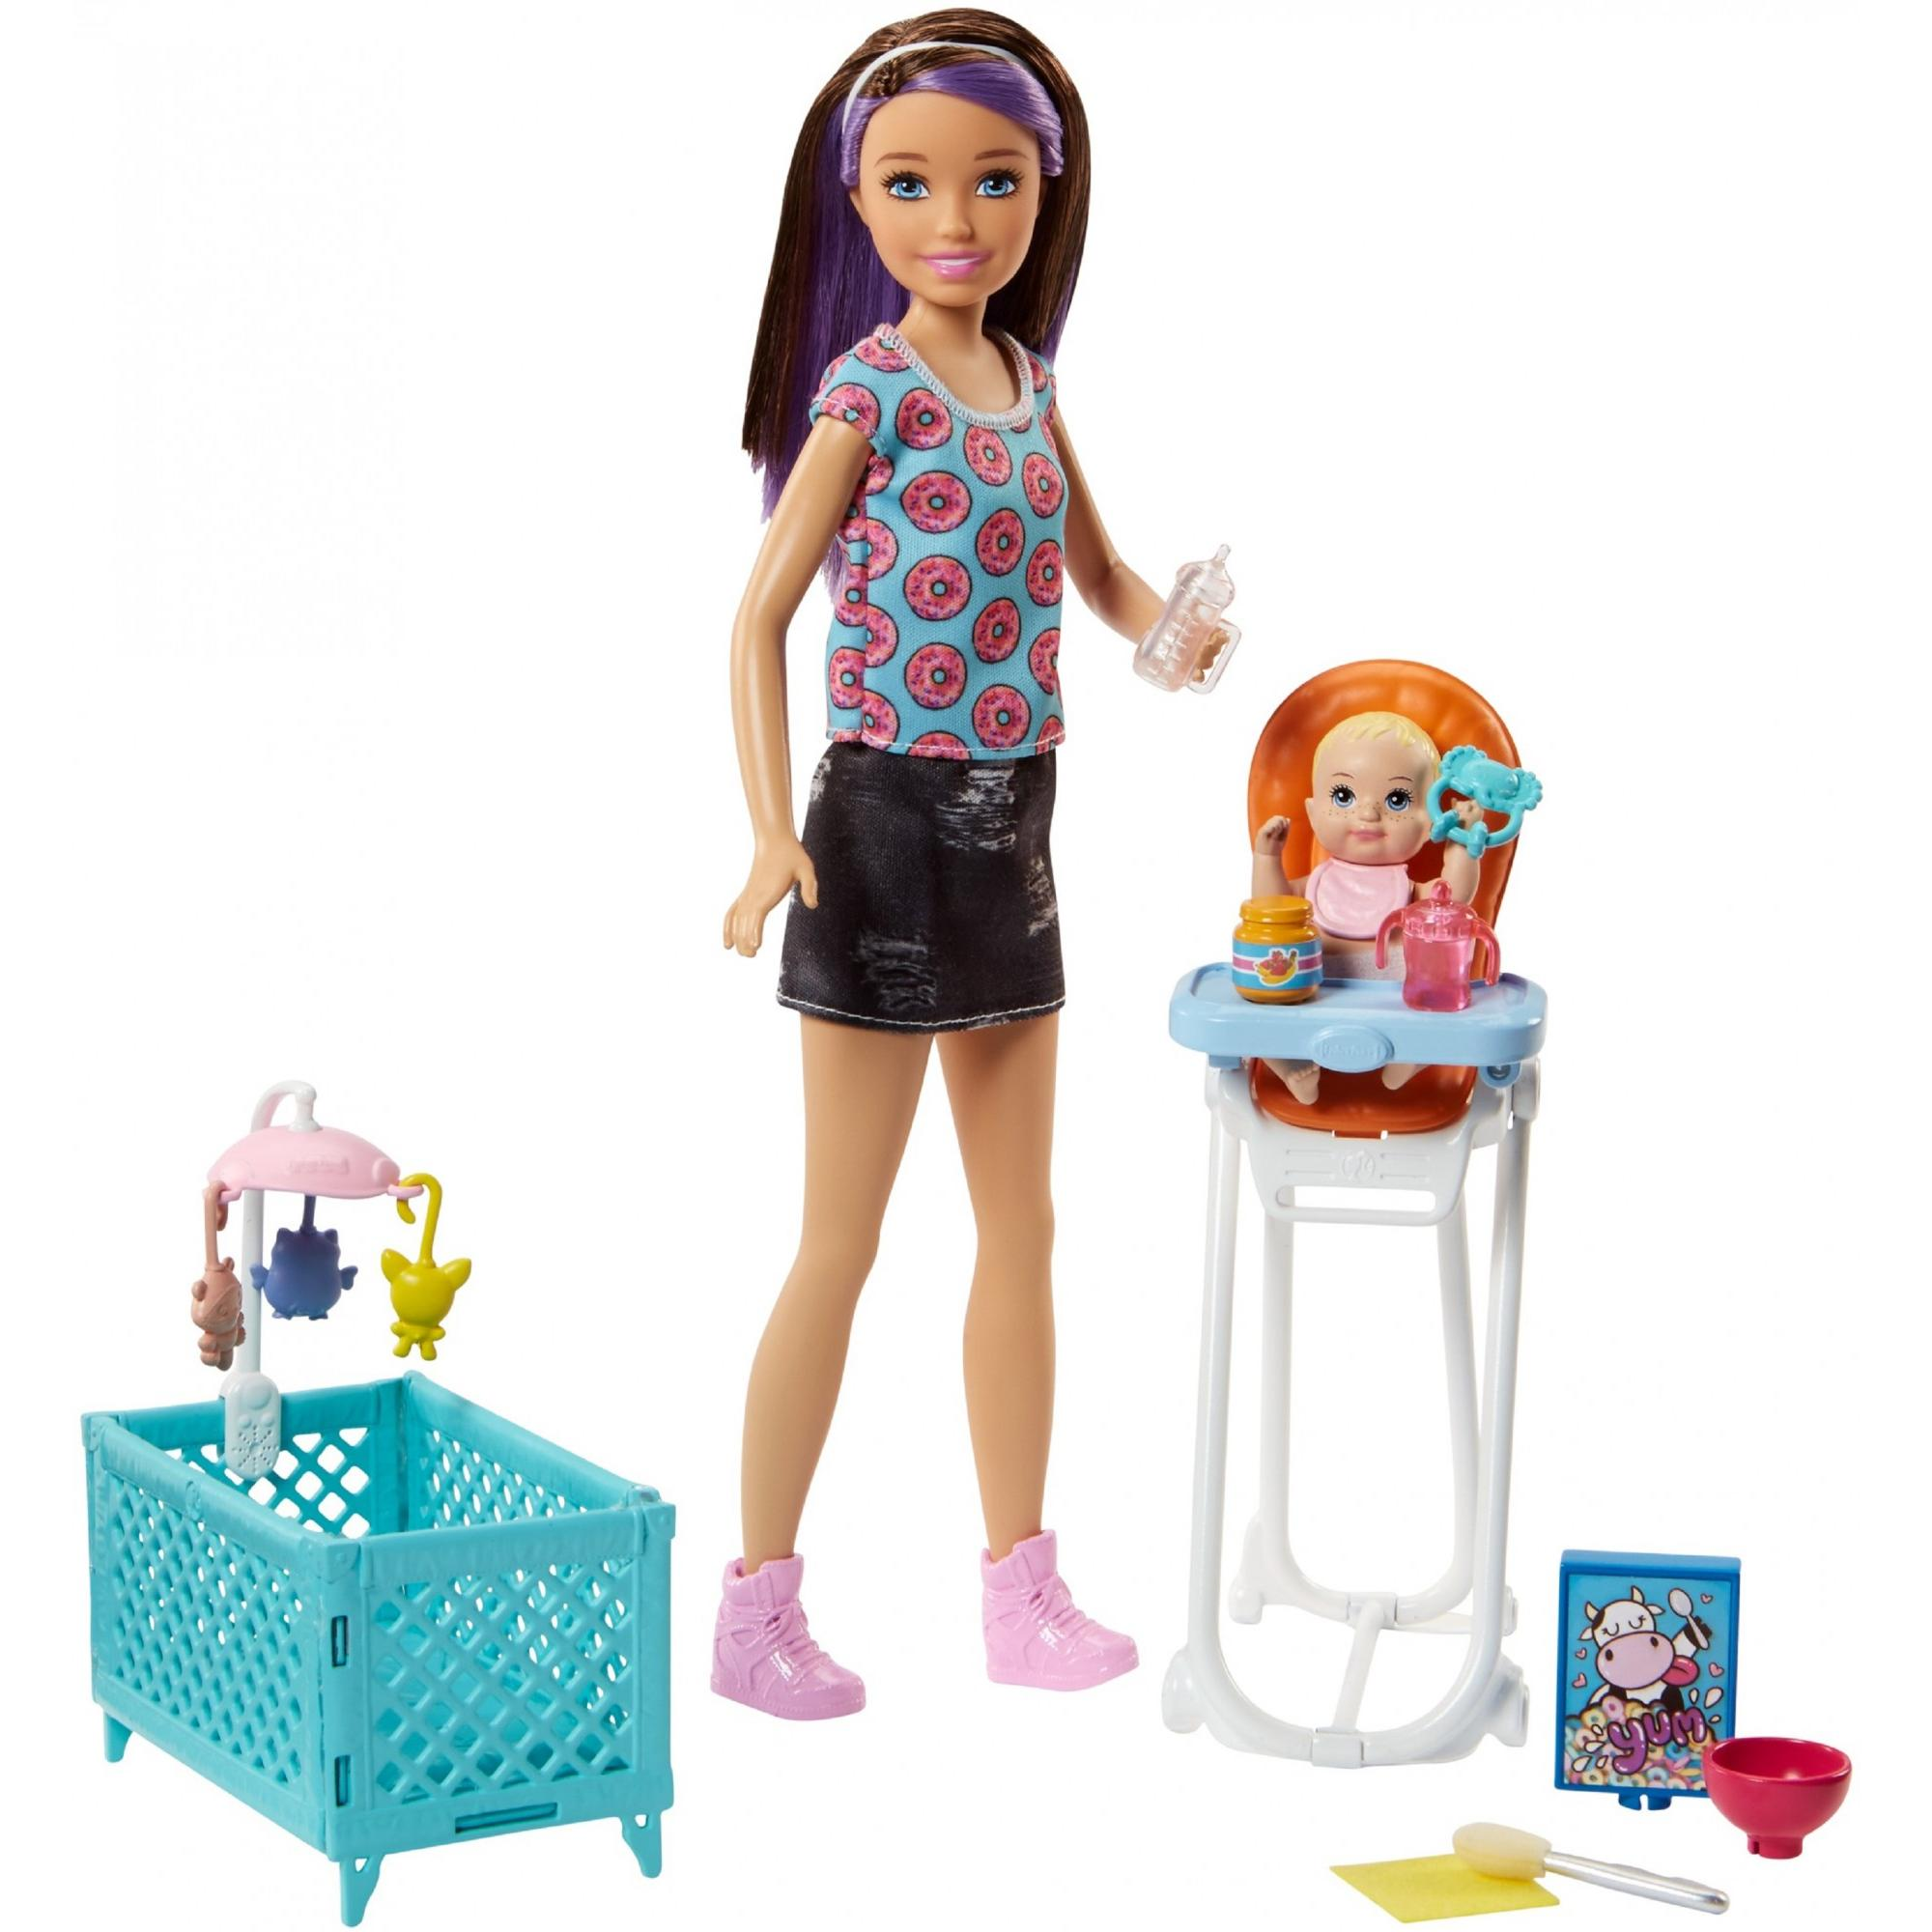 Barbie Skipper Babysitters Inc. Babysitter Playset and Doll by Mattel